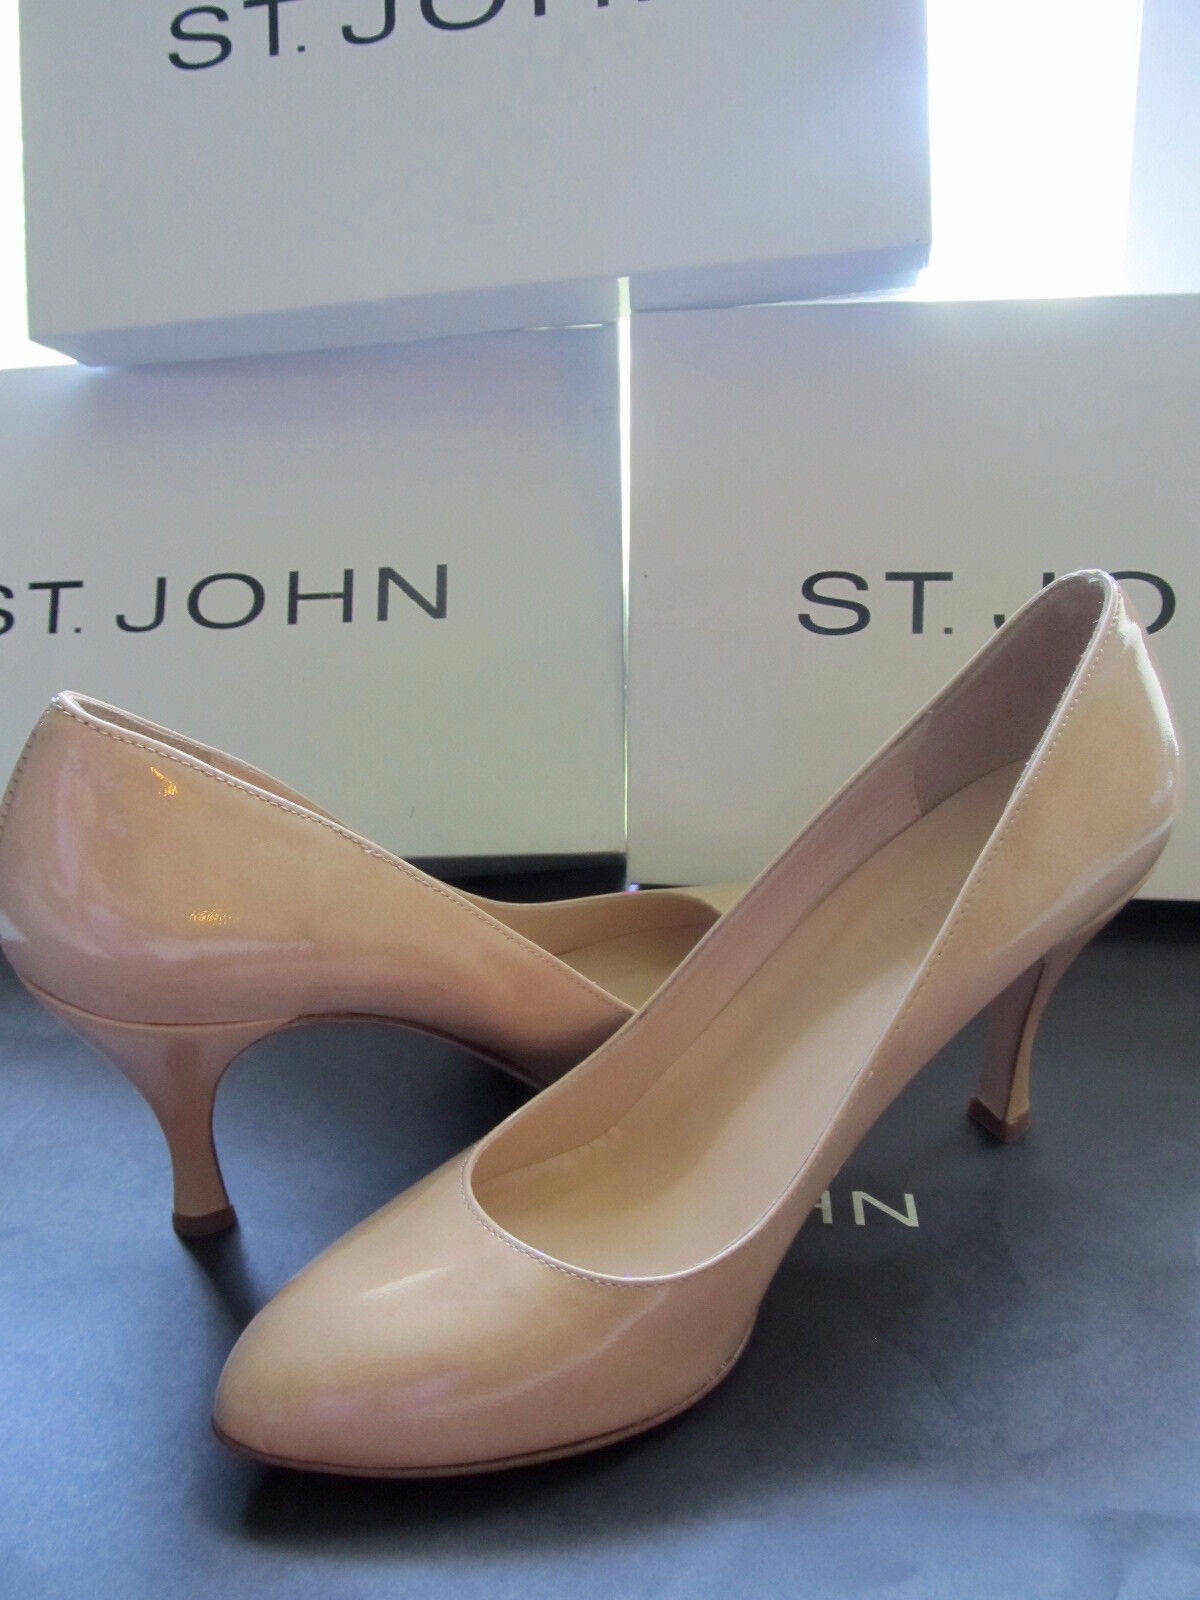 BRAND NEW ST JOHN KNIT SIZE 8.5 M WOMENS SHOES TAN PATENT LEATHER HEELS 3.5